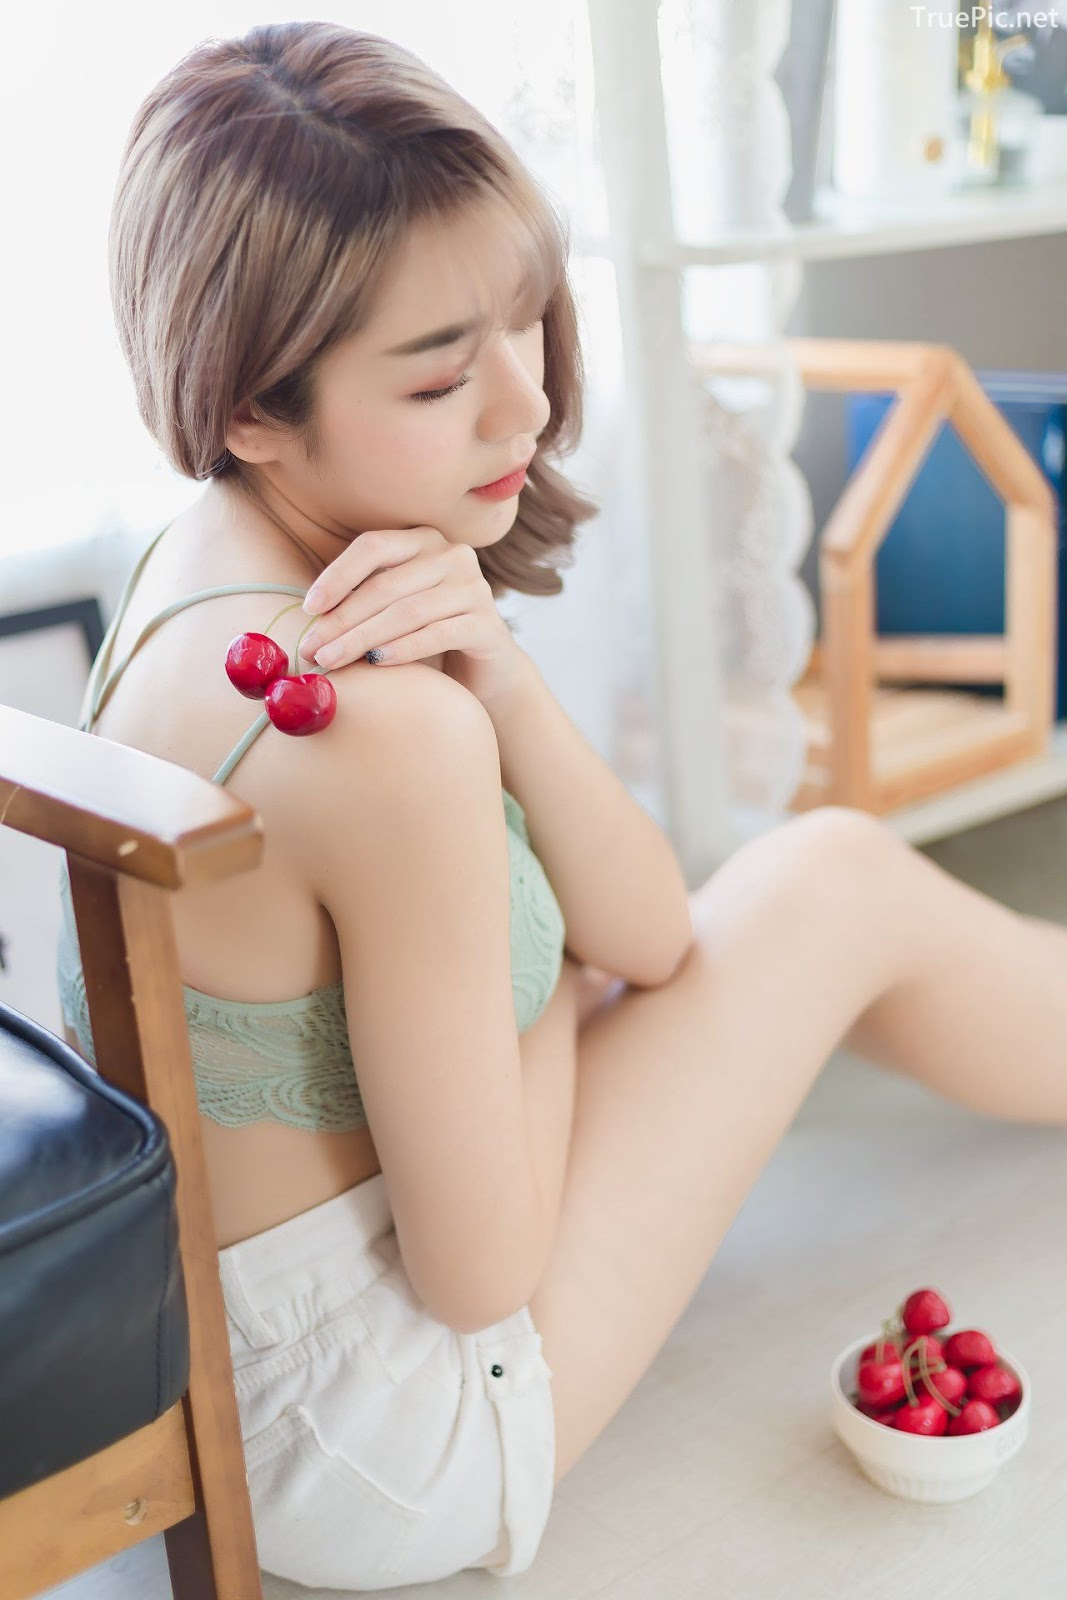 Thailand model Por Pin - One day home alone - Photo by จิตรทิวัส จั่นระยับ - Picture 7